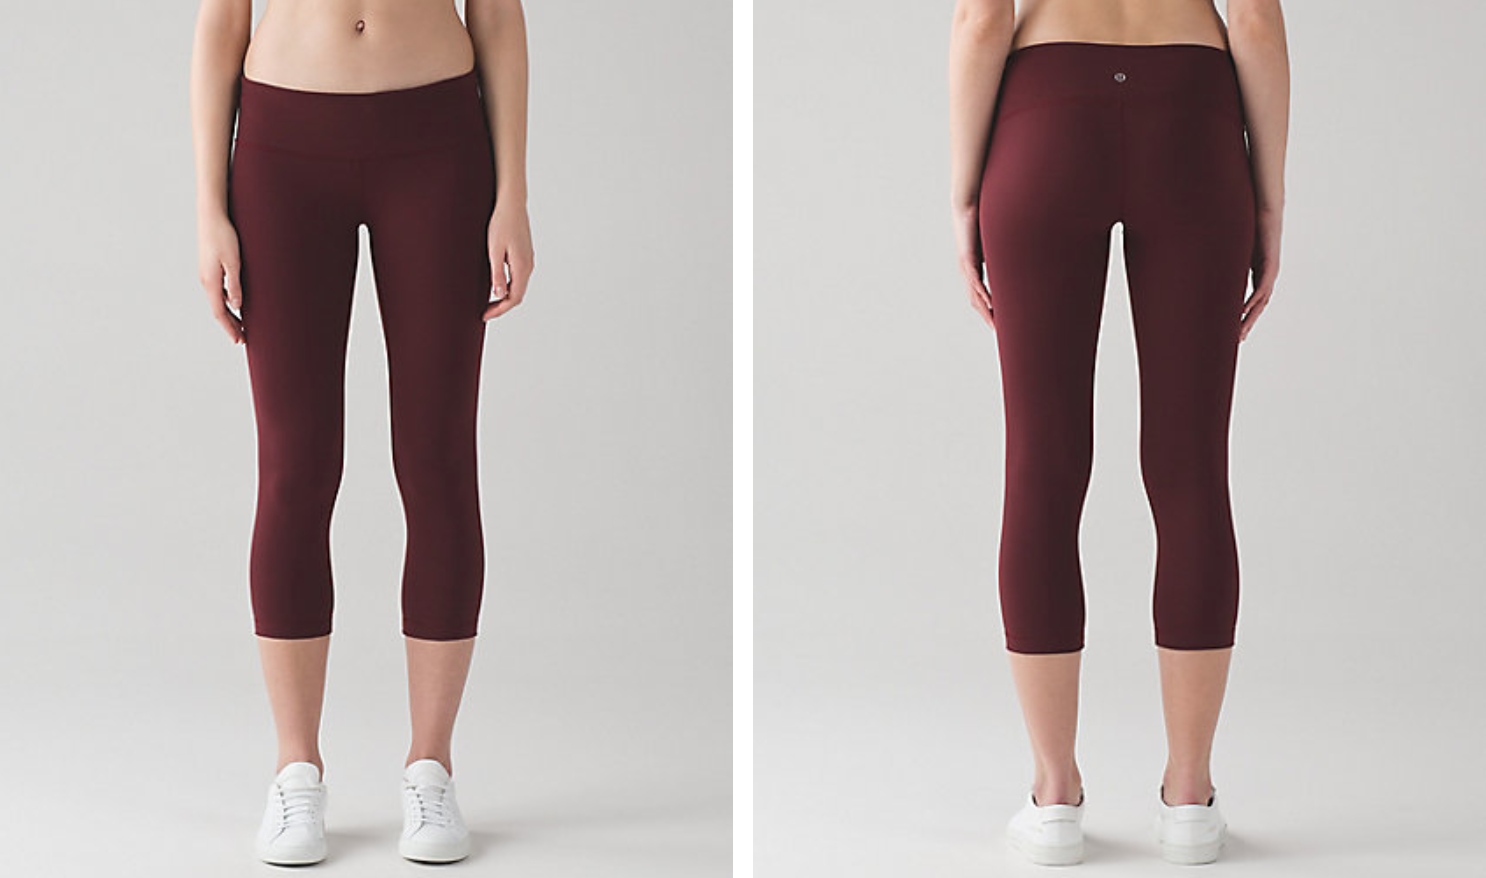 https://api.shopstyle.com/action/apiVisitRetailer?url=https%3A%2F%2Fshop.lululemon.com%2Fp%2Fwomen-crops%2FWunder-Under-Crop-III-Full-On-Luon%2F_%2Fprod250126%3Frcnt%3D15%26N%3D1z13ziiZ7z5%26cnt%3D71%26color%3DLW6G43S_028588&site=www.shopstyle.ca&pid=uid6784-25288972-7